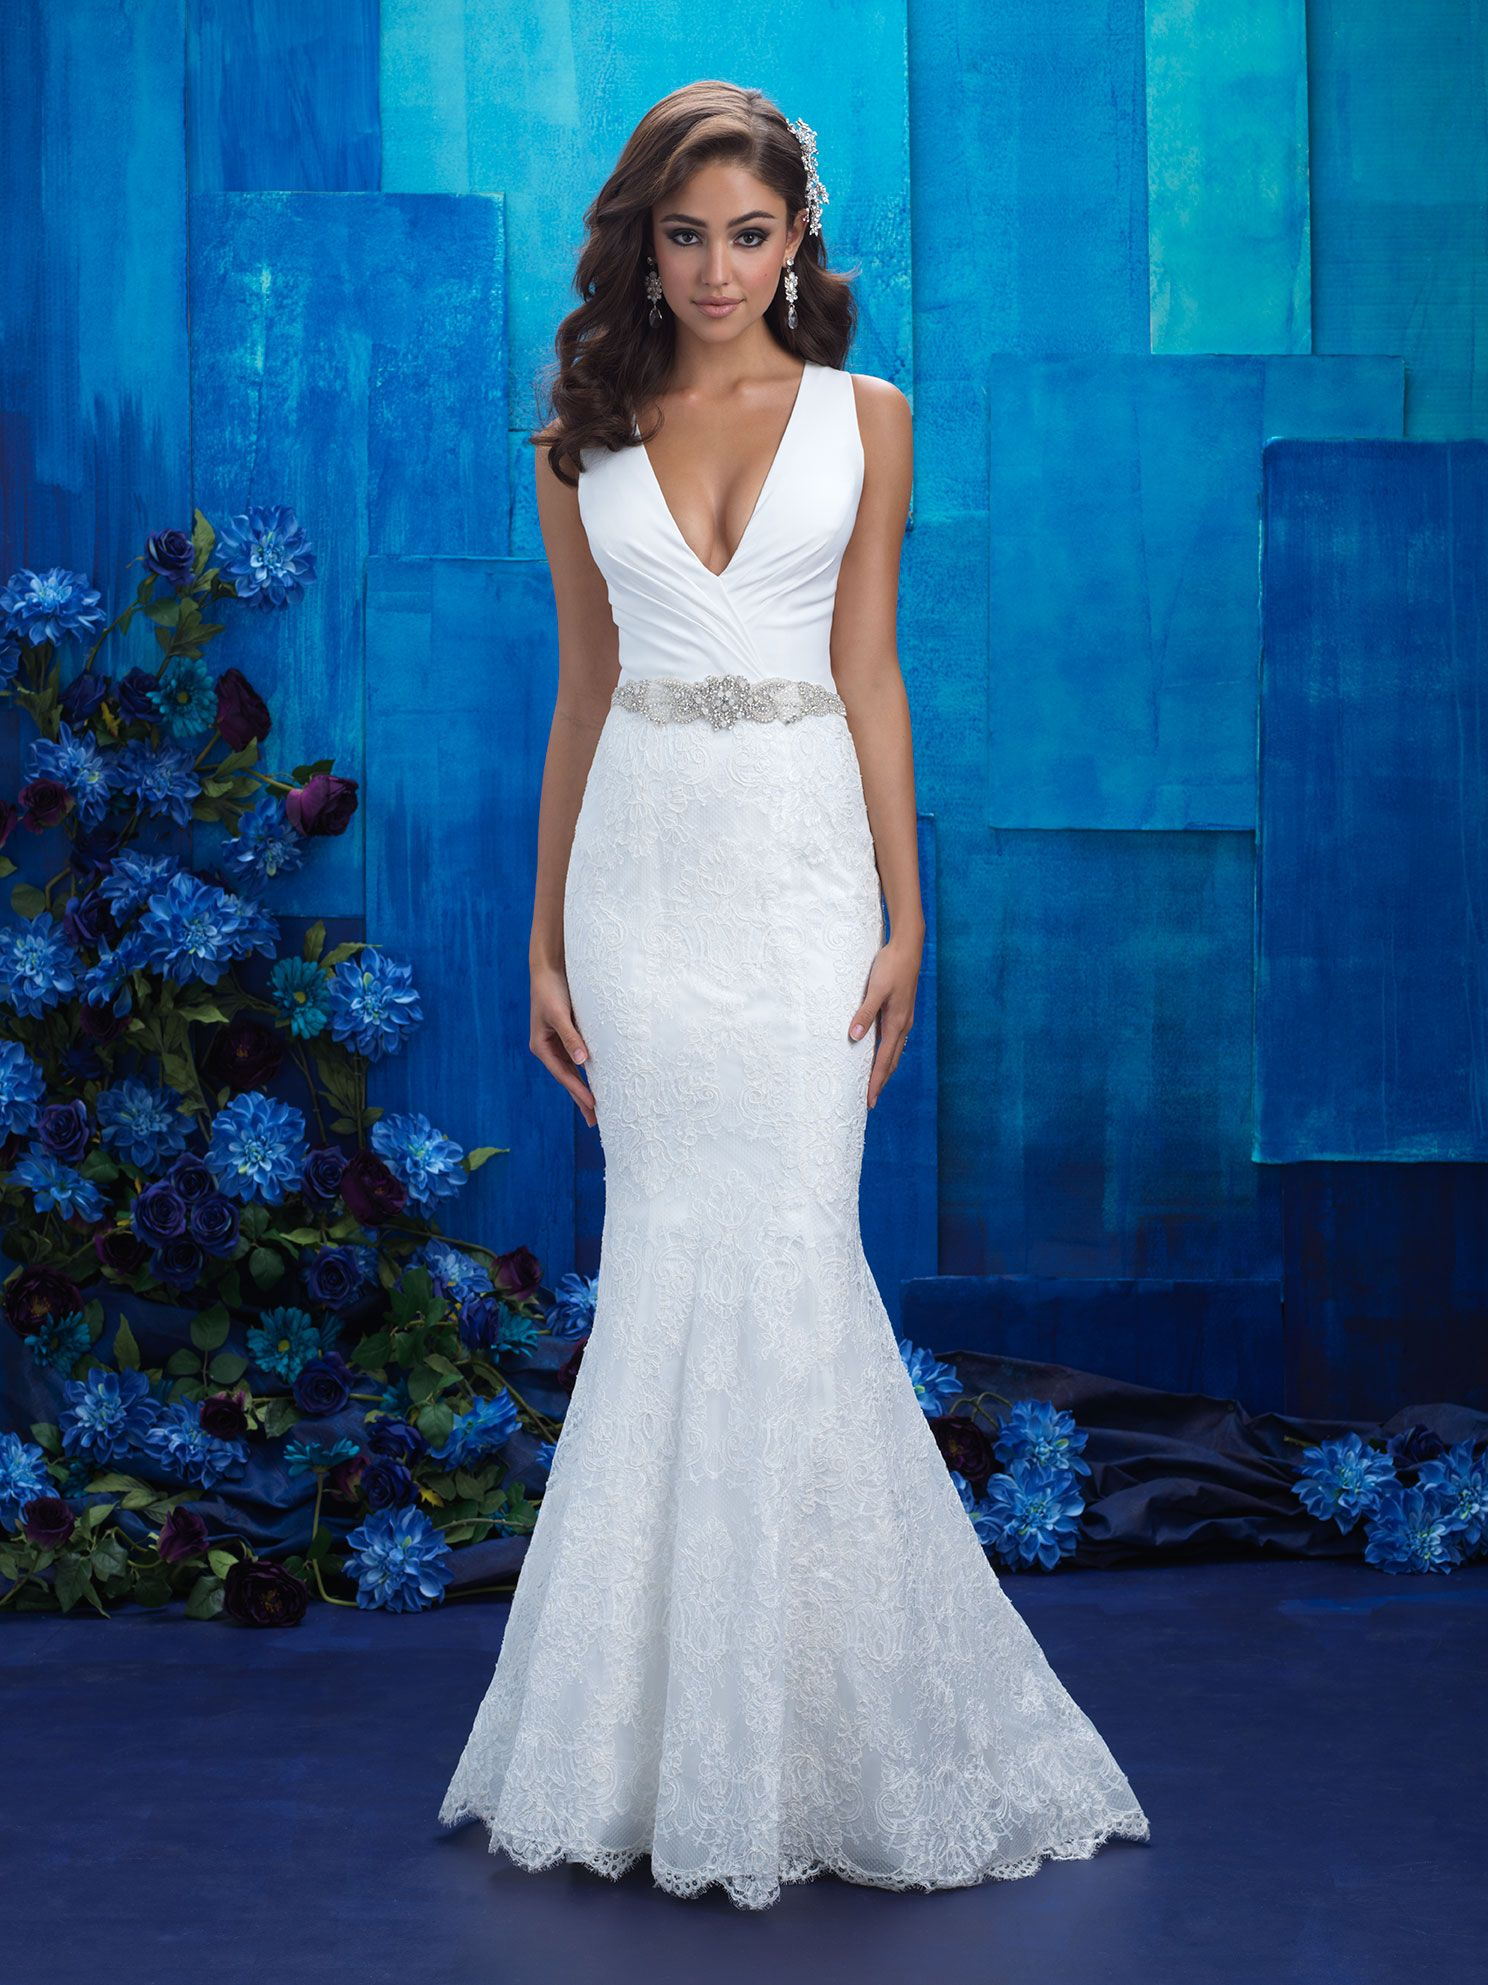 a0aed0eeca Allure Bridals style 9410. Allure Bridals style 9410 Bridal Lace